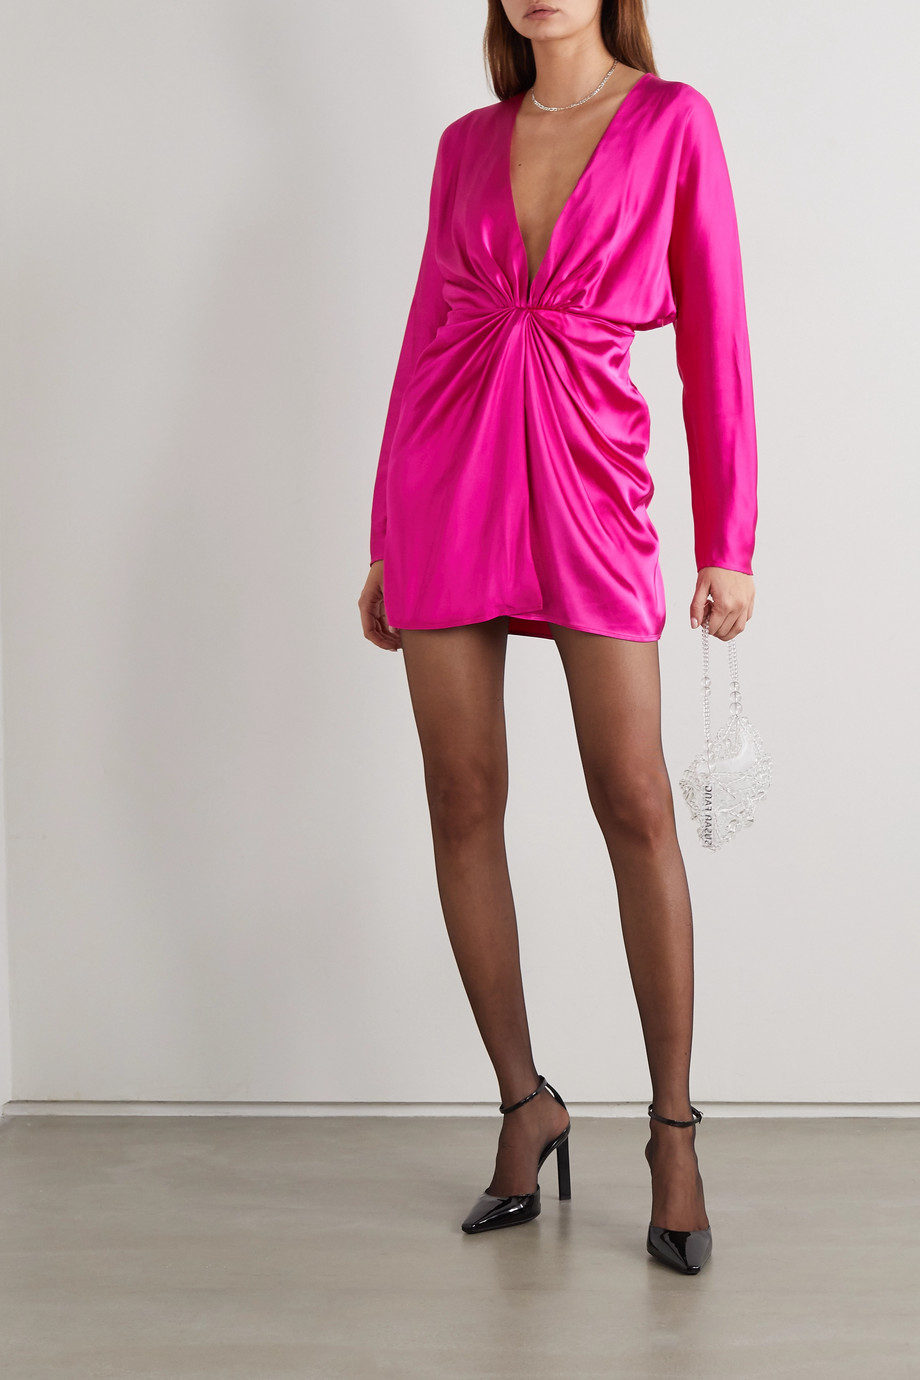 GAUGE81 Shibu gathered satin mini dress